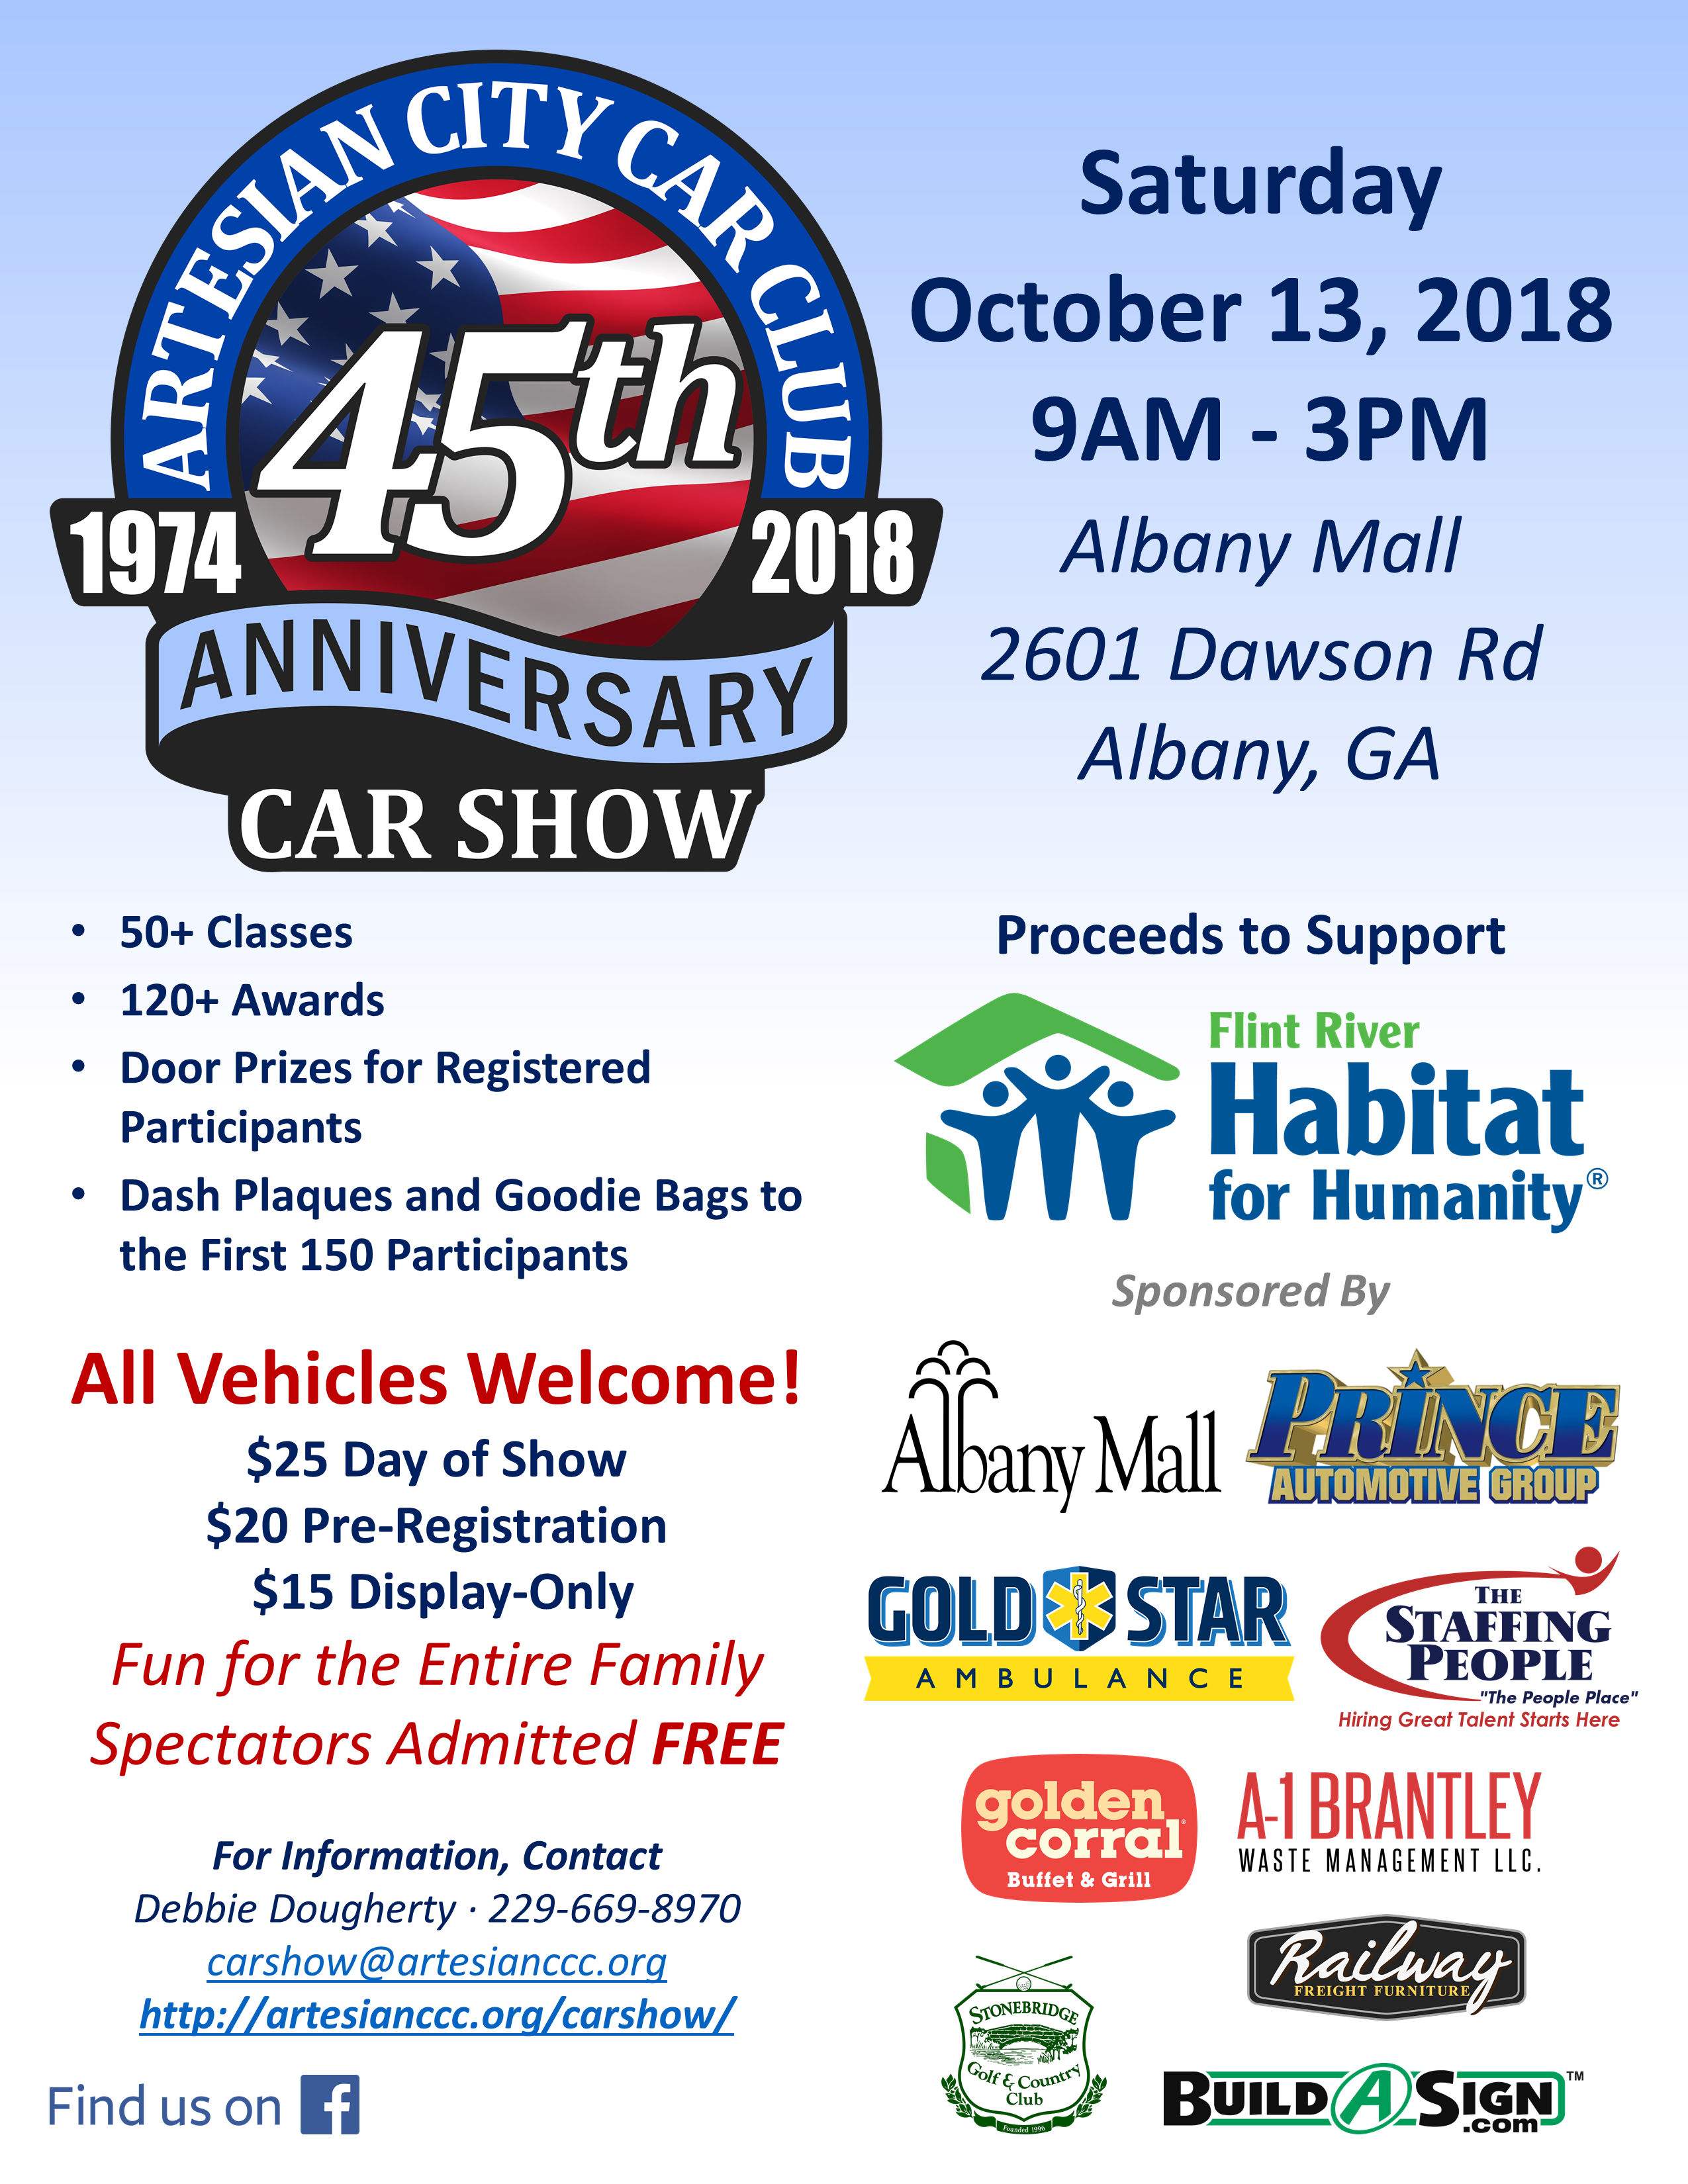 Artesian City Car Club 45th Anniversary Car Show